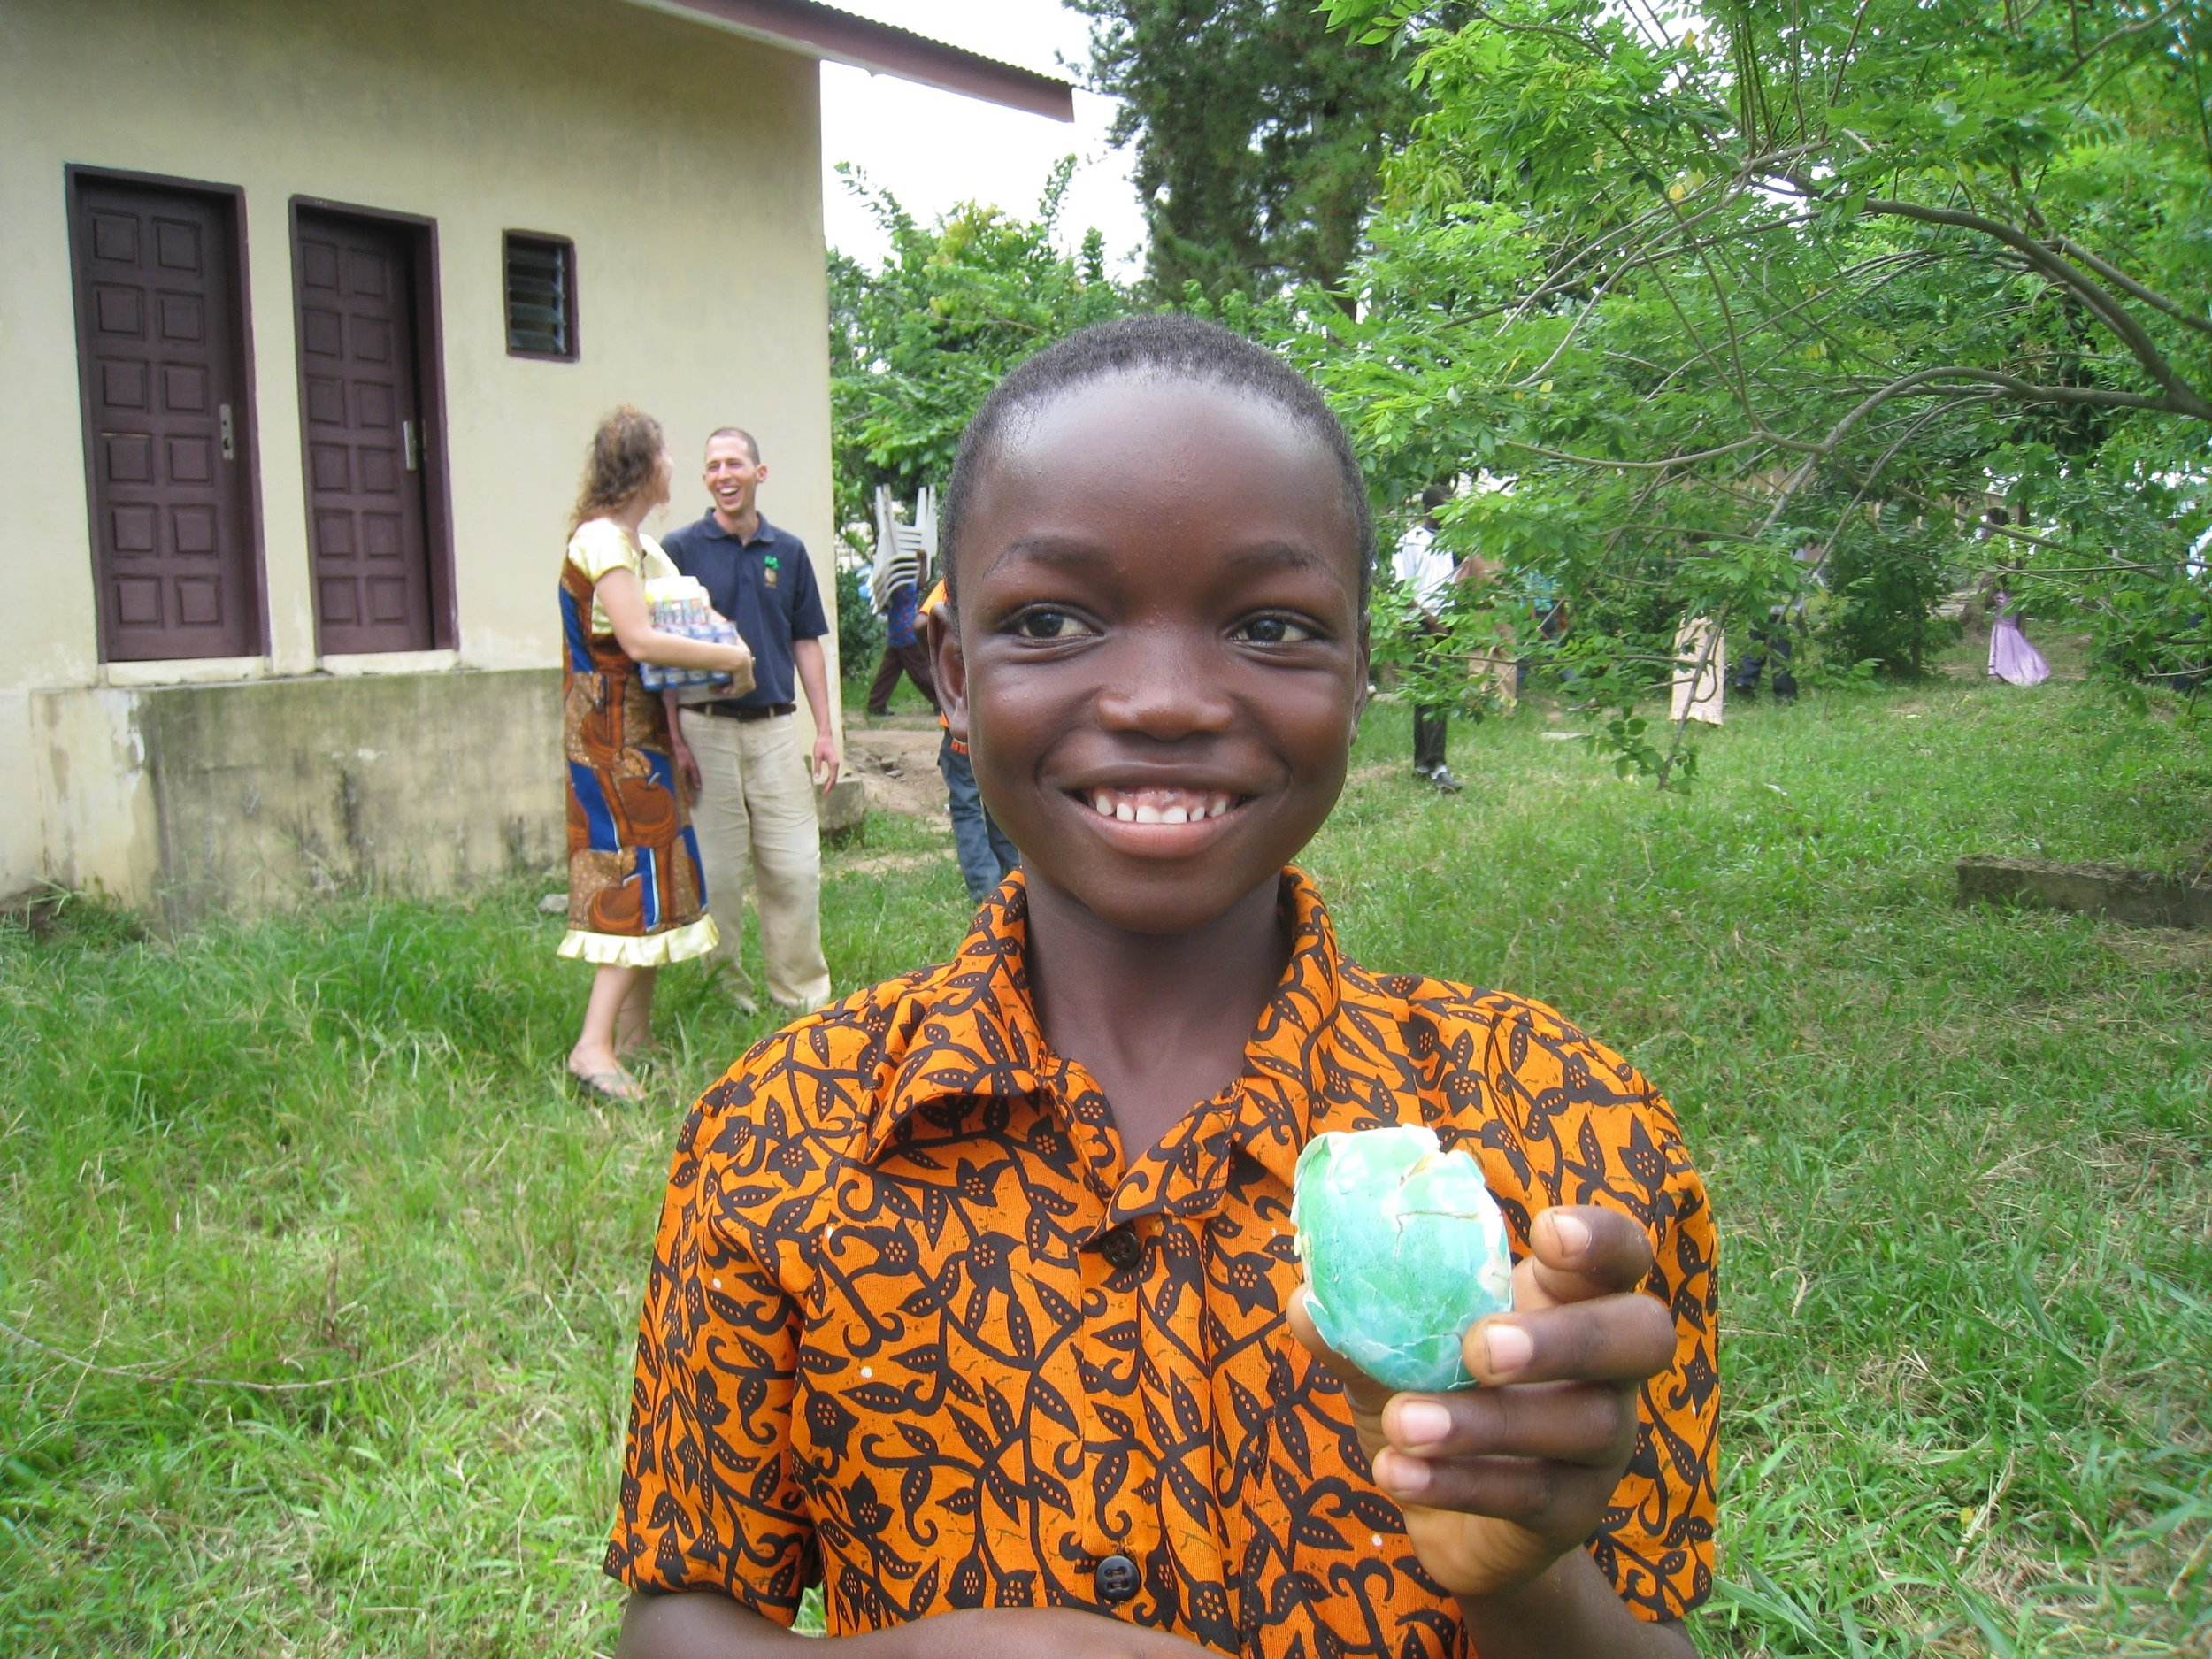 A student successfully hunting eggs for our annual Easter egg hunt in 2011.